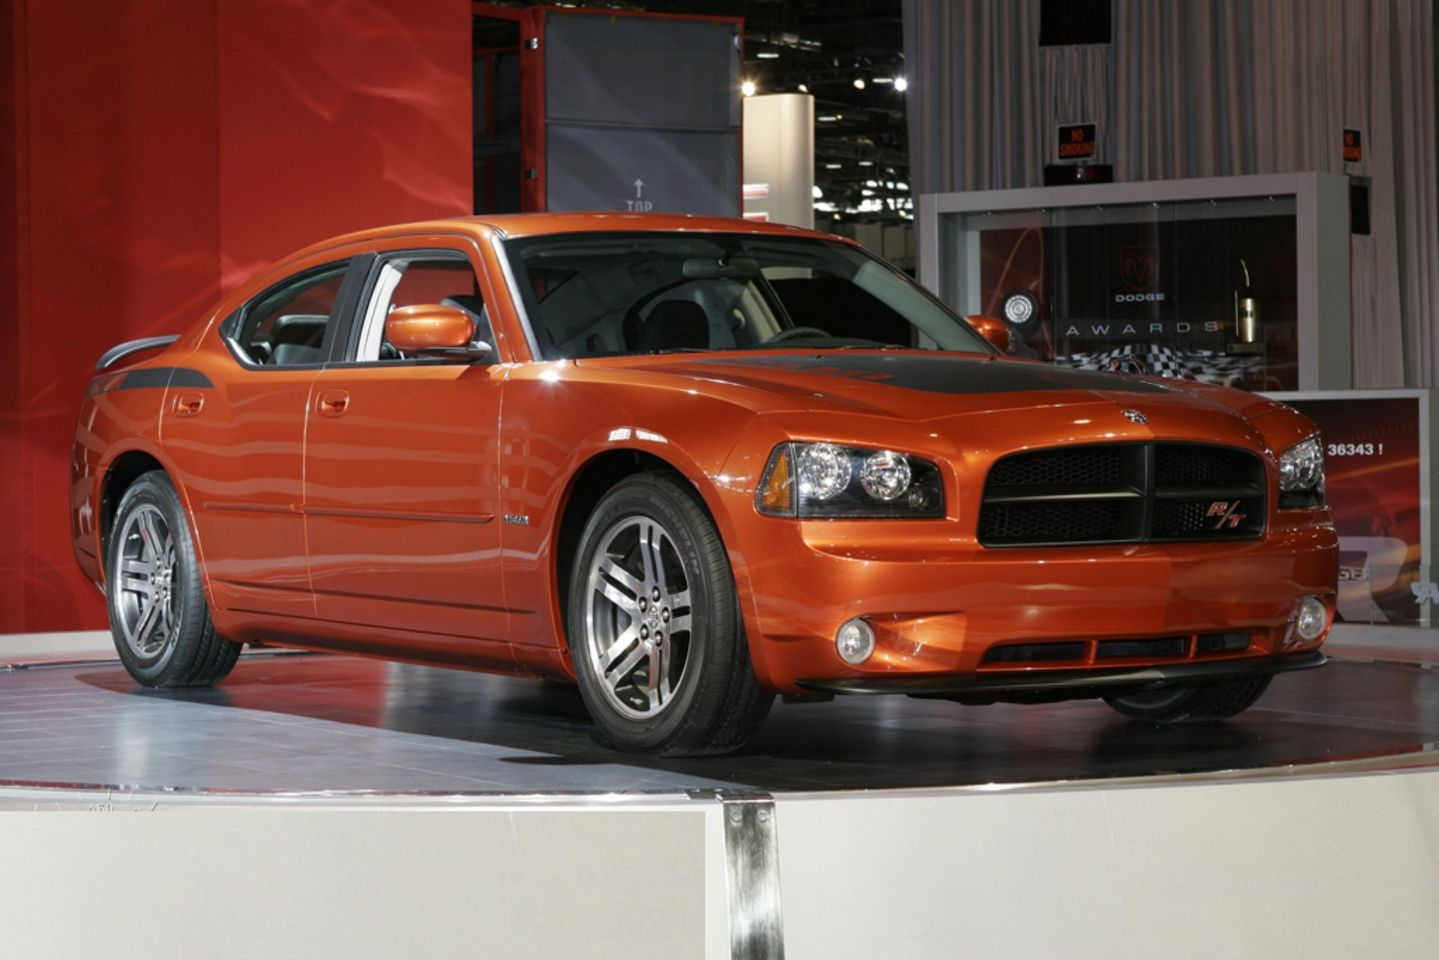 All Types 2006 charger daytona : 2006 Dodge Charger Rt Daytona Limited Edition . They only made ...